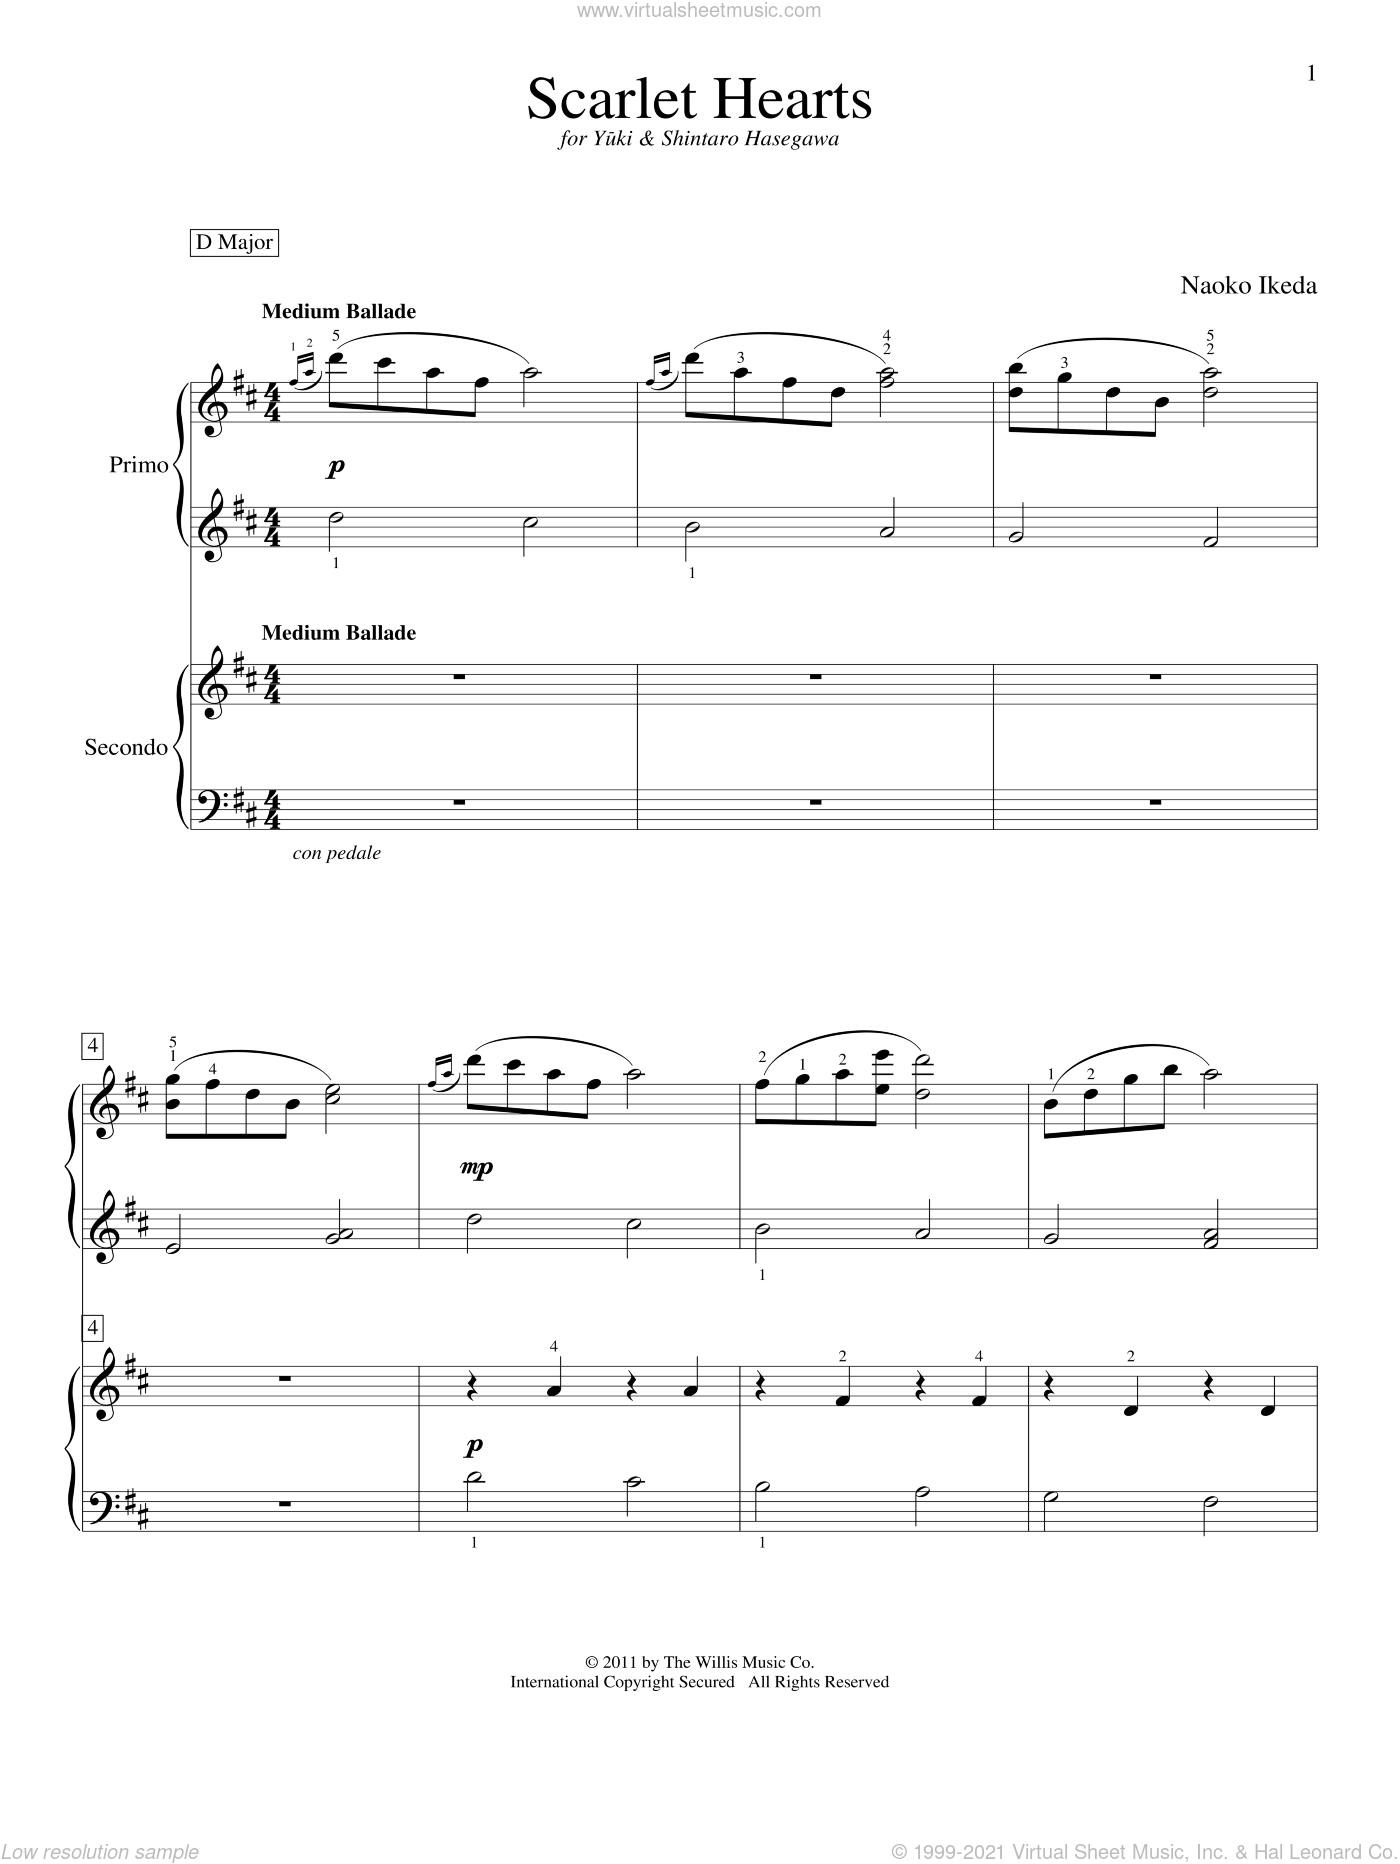 Scarlet Hearts sheet music for piano four hands by Naoko Ikeda, intermediate skill level